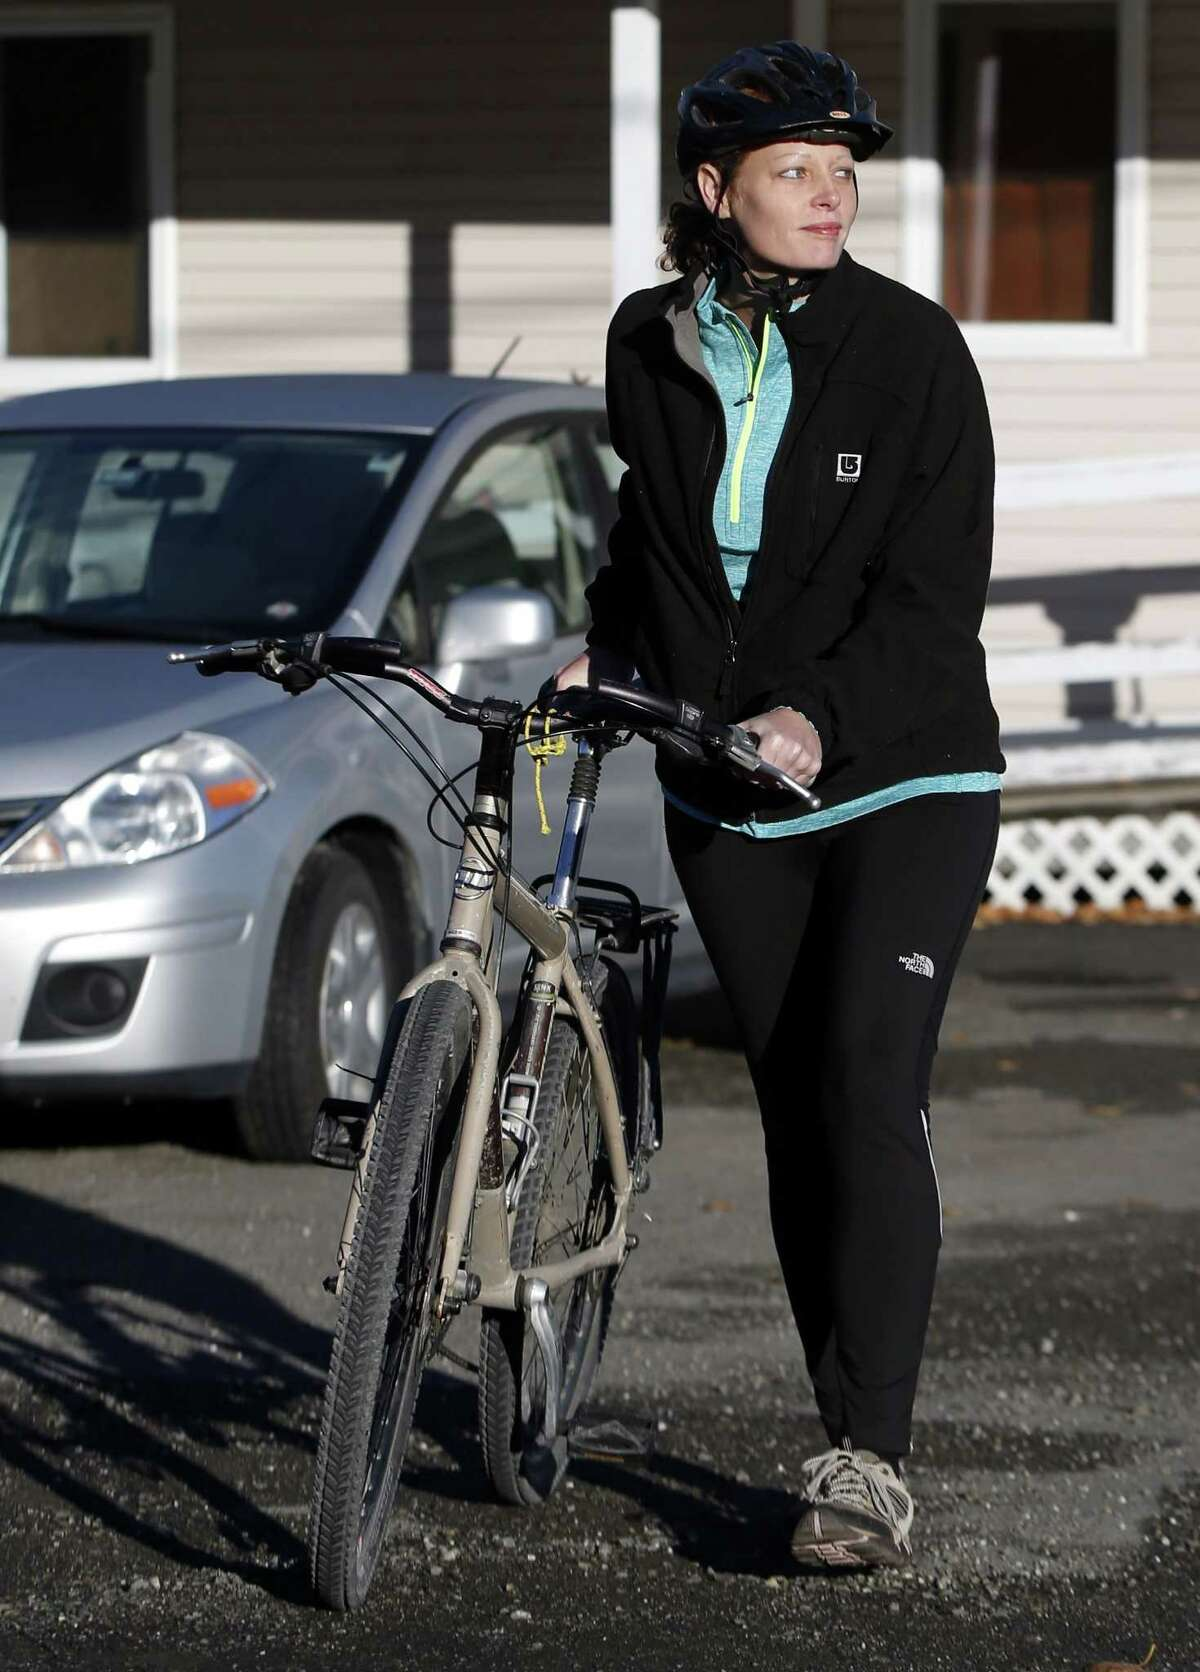 Nurse Kaci Hickox leaves her home on a rural road in Fort Kent, Maine, to take a bike ride with her boyfriend Ted Wilbur, Thursday, Oct. 30, 2014. (AP Photo/Robert F. Bukaty)